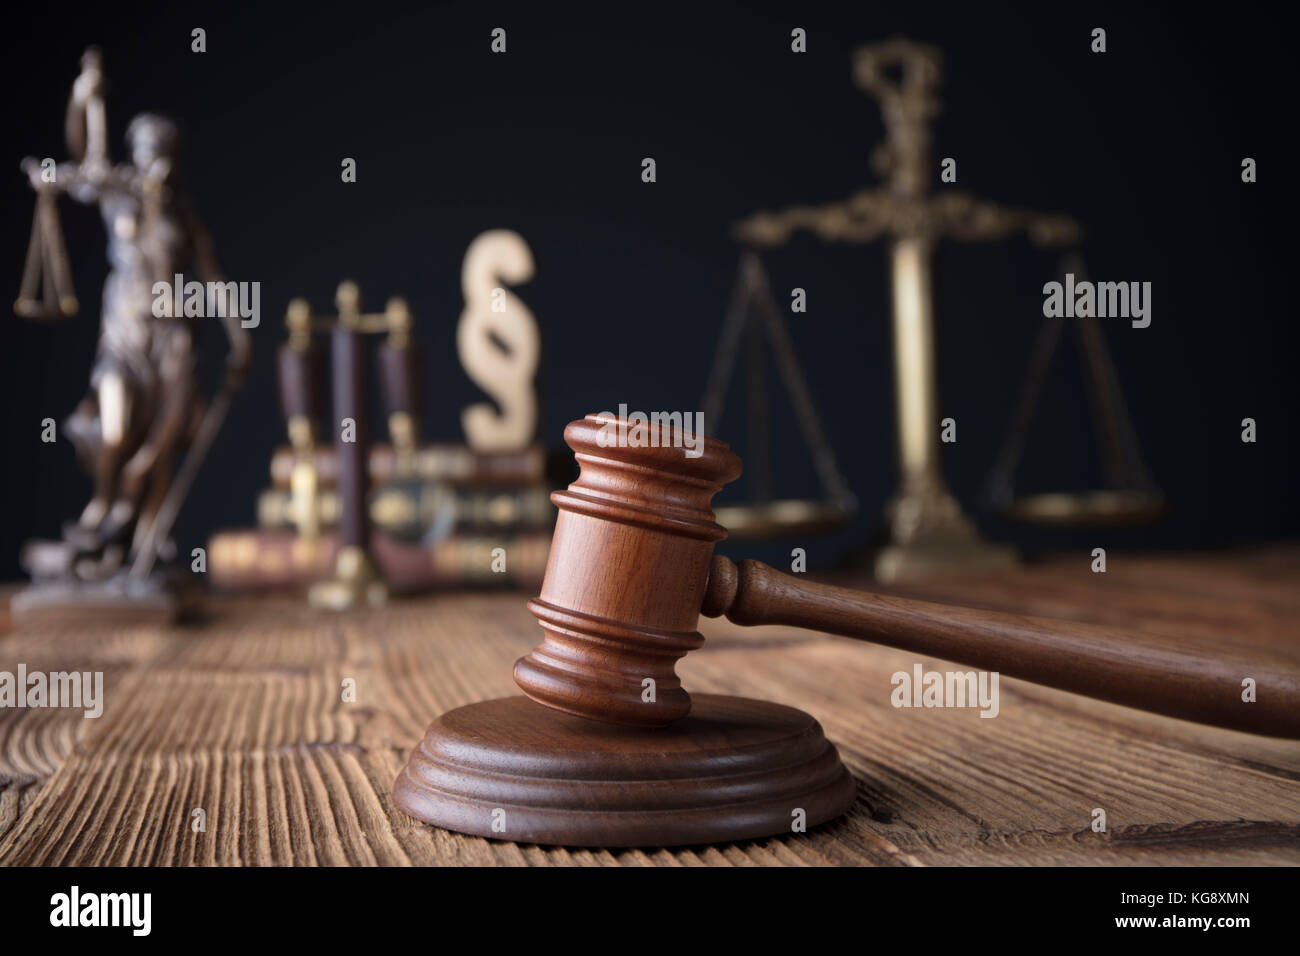 Counselor At Law Stock Photos & Counselor At Law Stock ...